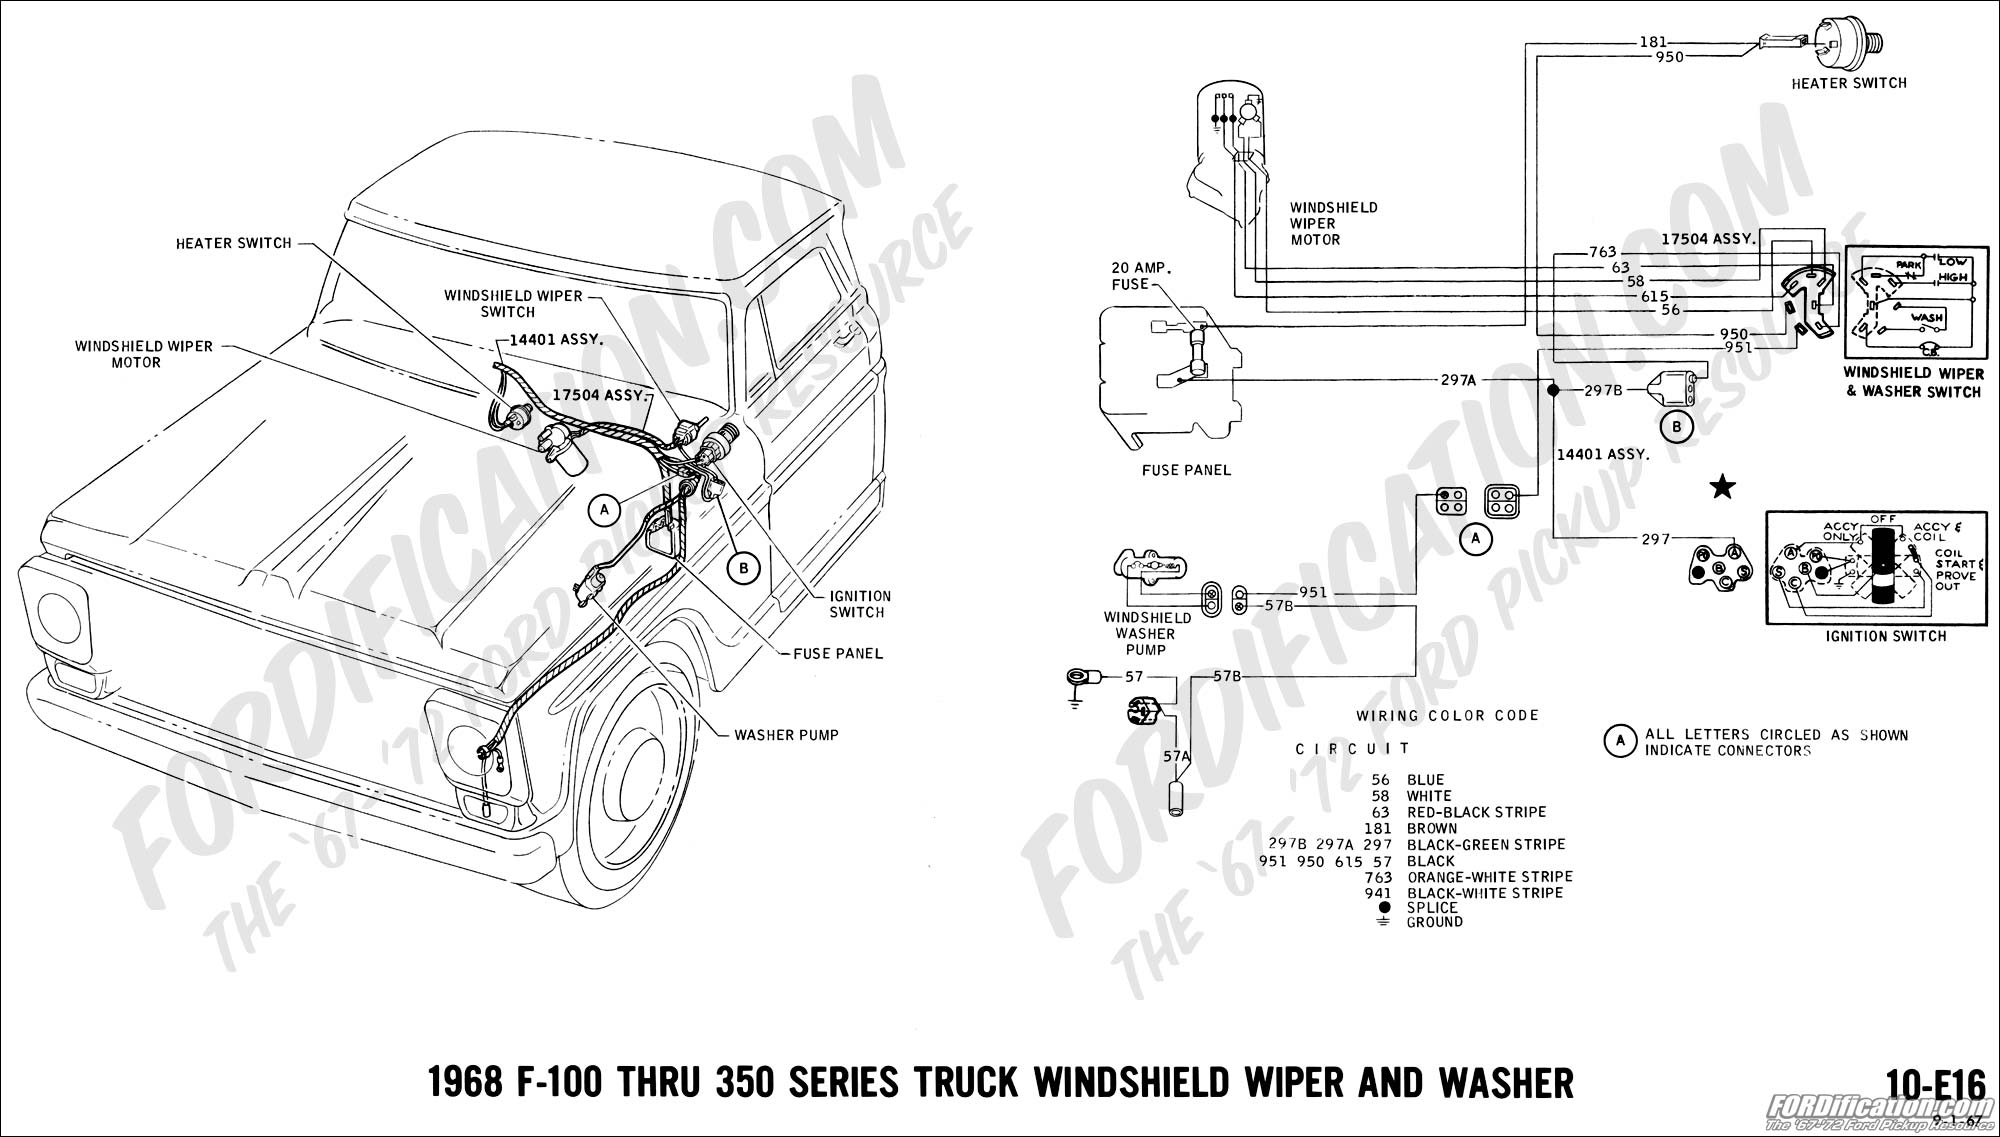 Ford Ranger 1996 Fuse Box Diagram Usa Version in addition T8236855 Need know fuse goes rear windshield also Schematics i moreover Diagrams 12511637 Ford Falcon Wiring Diagram 63 1963 Radio Automotive further 1969 Mustang Wiring Diagram Diagrams Stunning 1968 Ignition Switch Ideas. on ford wiper motor wiring diagram